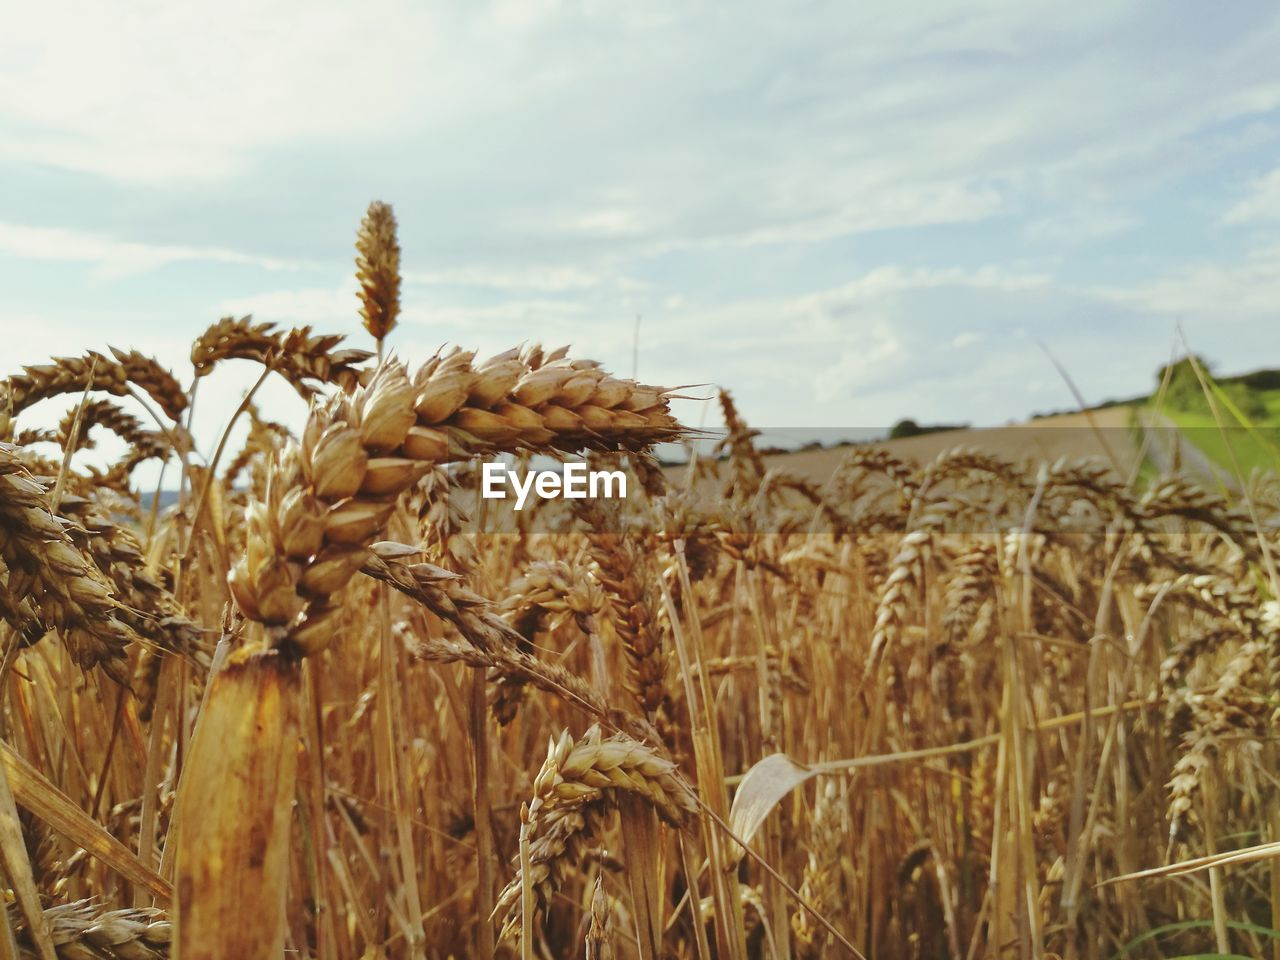 crop, growth, agriculture, cereal plant, field, nature, farm, wheat, tranquility, plant, rural scene, tranquil scene, day, sky, no people, outdoors, ear of wheat, beauty in nature, scenics, close-up